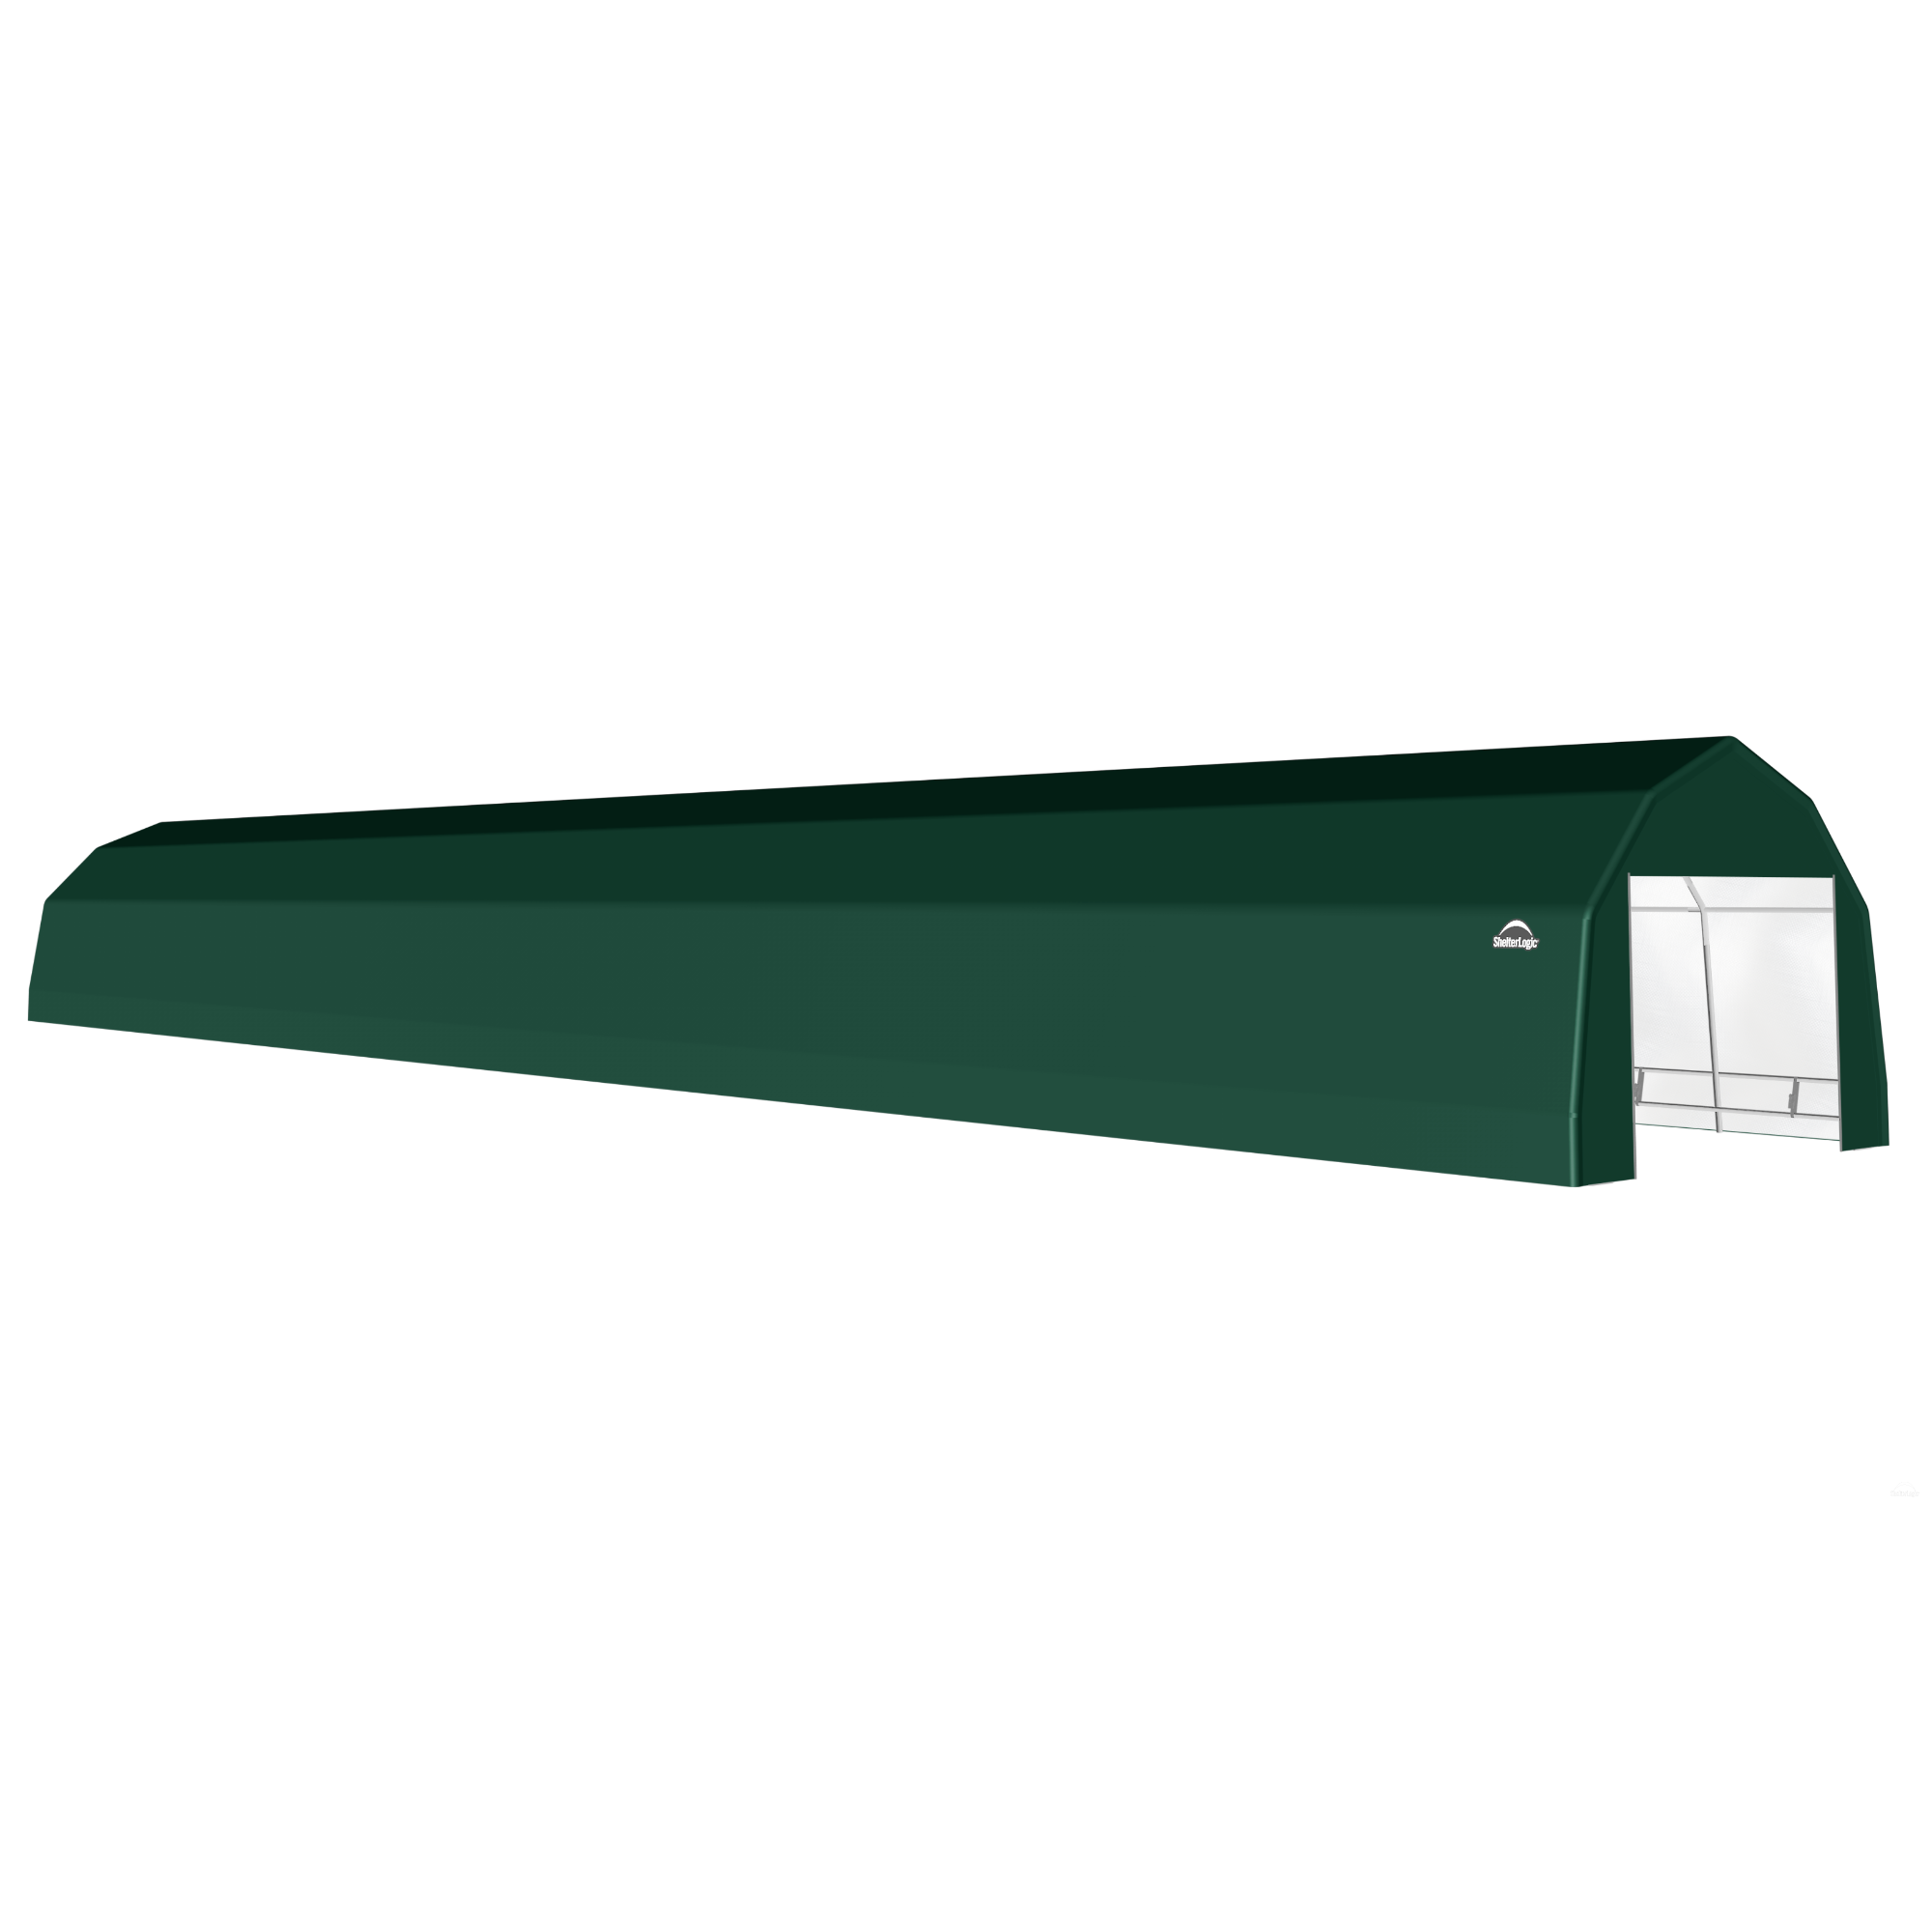 SP Barn 12X72X9 Green 14 oz PE Shelter